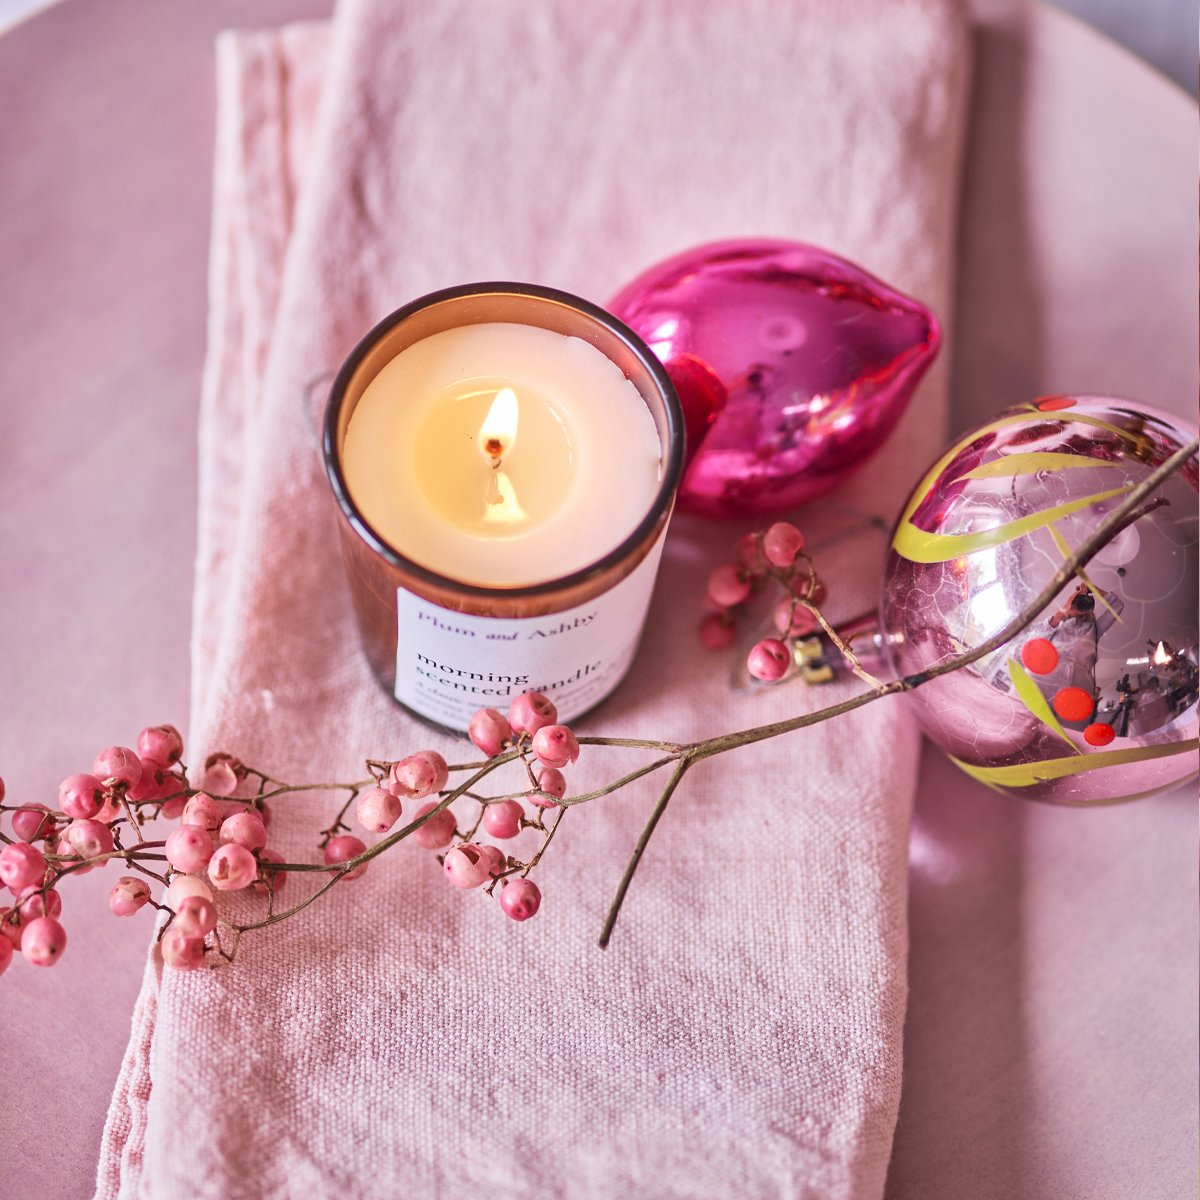 SPICED ORANGE AND RED BERRY VOTIVE CANDLE